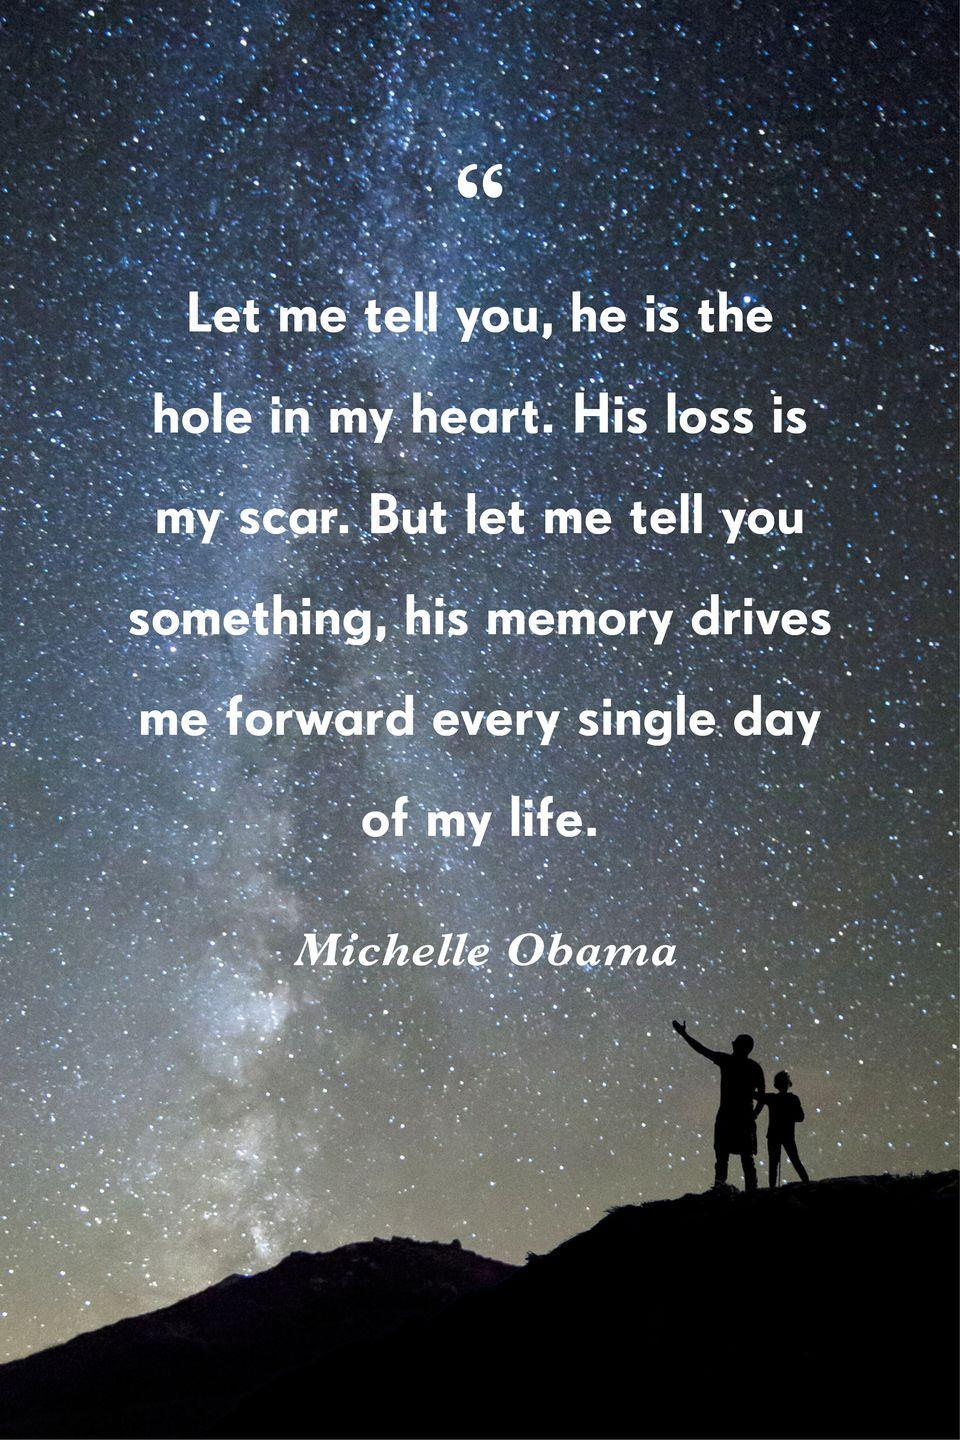 """<p>""""Let me tell you, he is the hole in my heart. His loss is my scar. But let me tell you something, his memory drives me forward every single day of my life.""""</p>"""